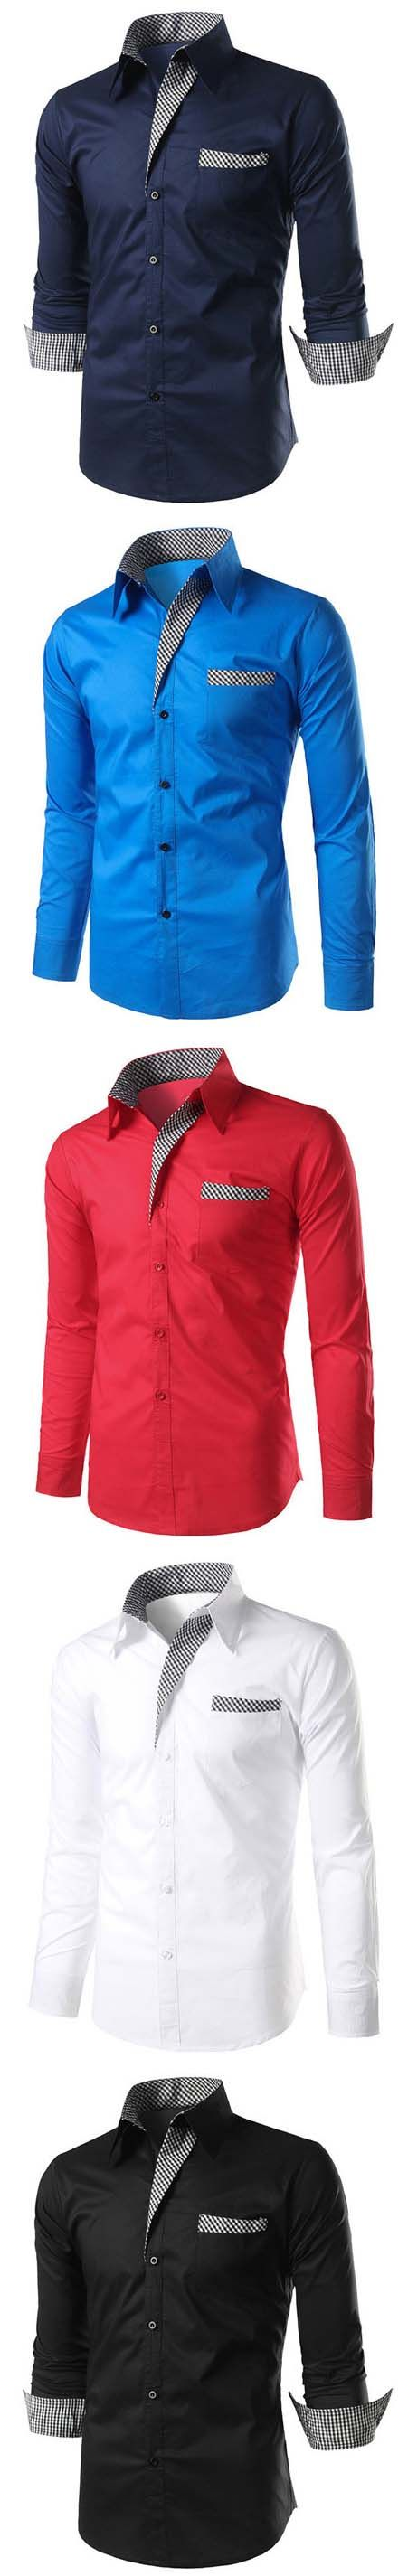 US$15.88#Mens shirts,Business Casual Fashion Slim Checked Button Up Designer Shirts for Men